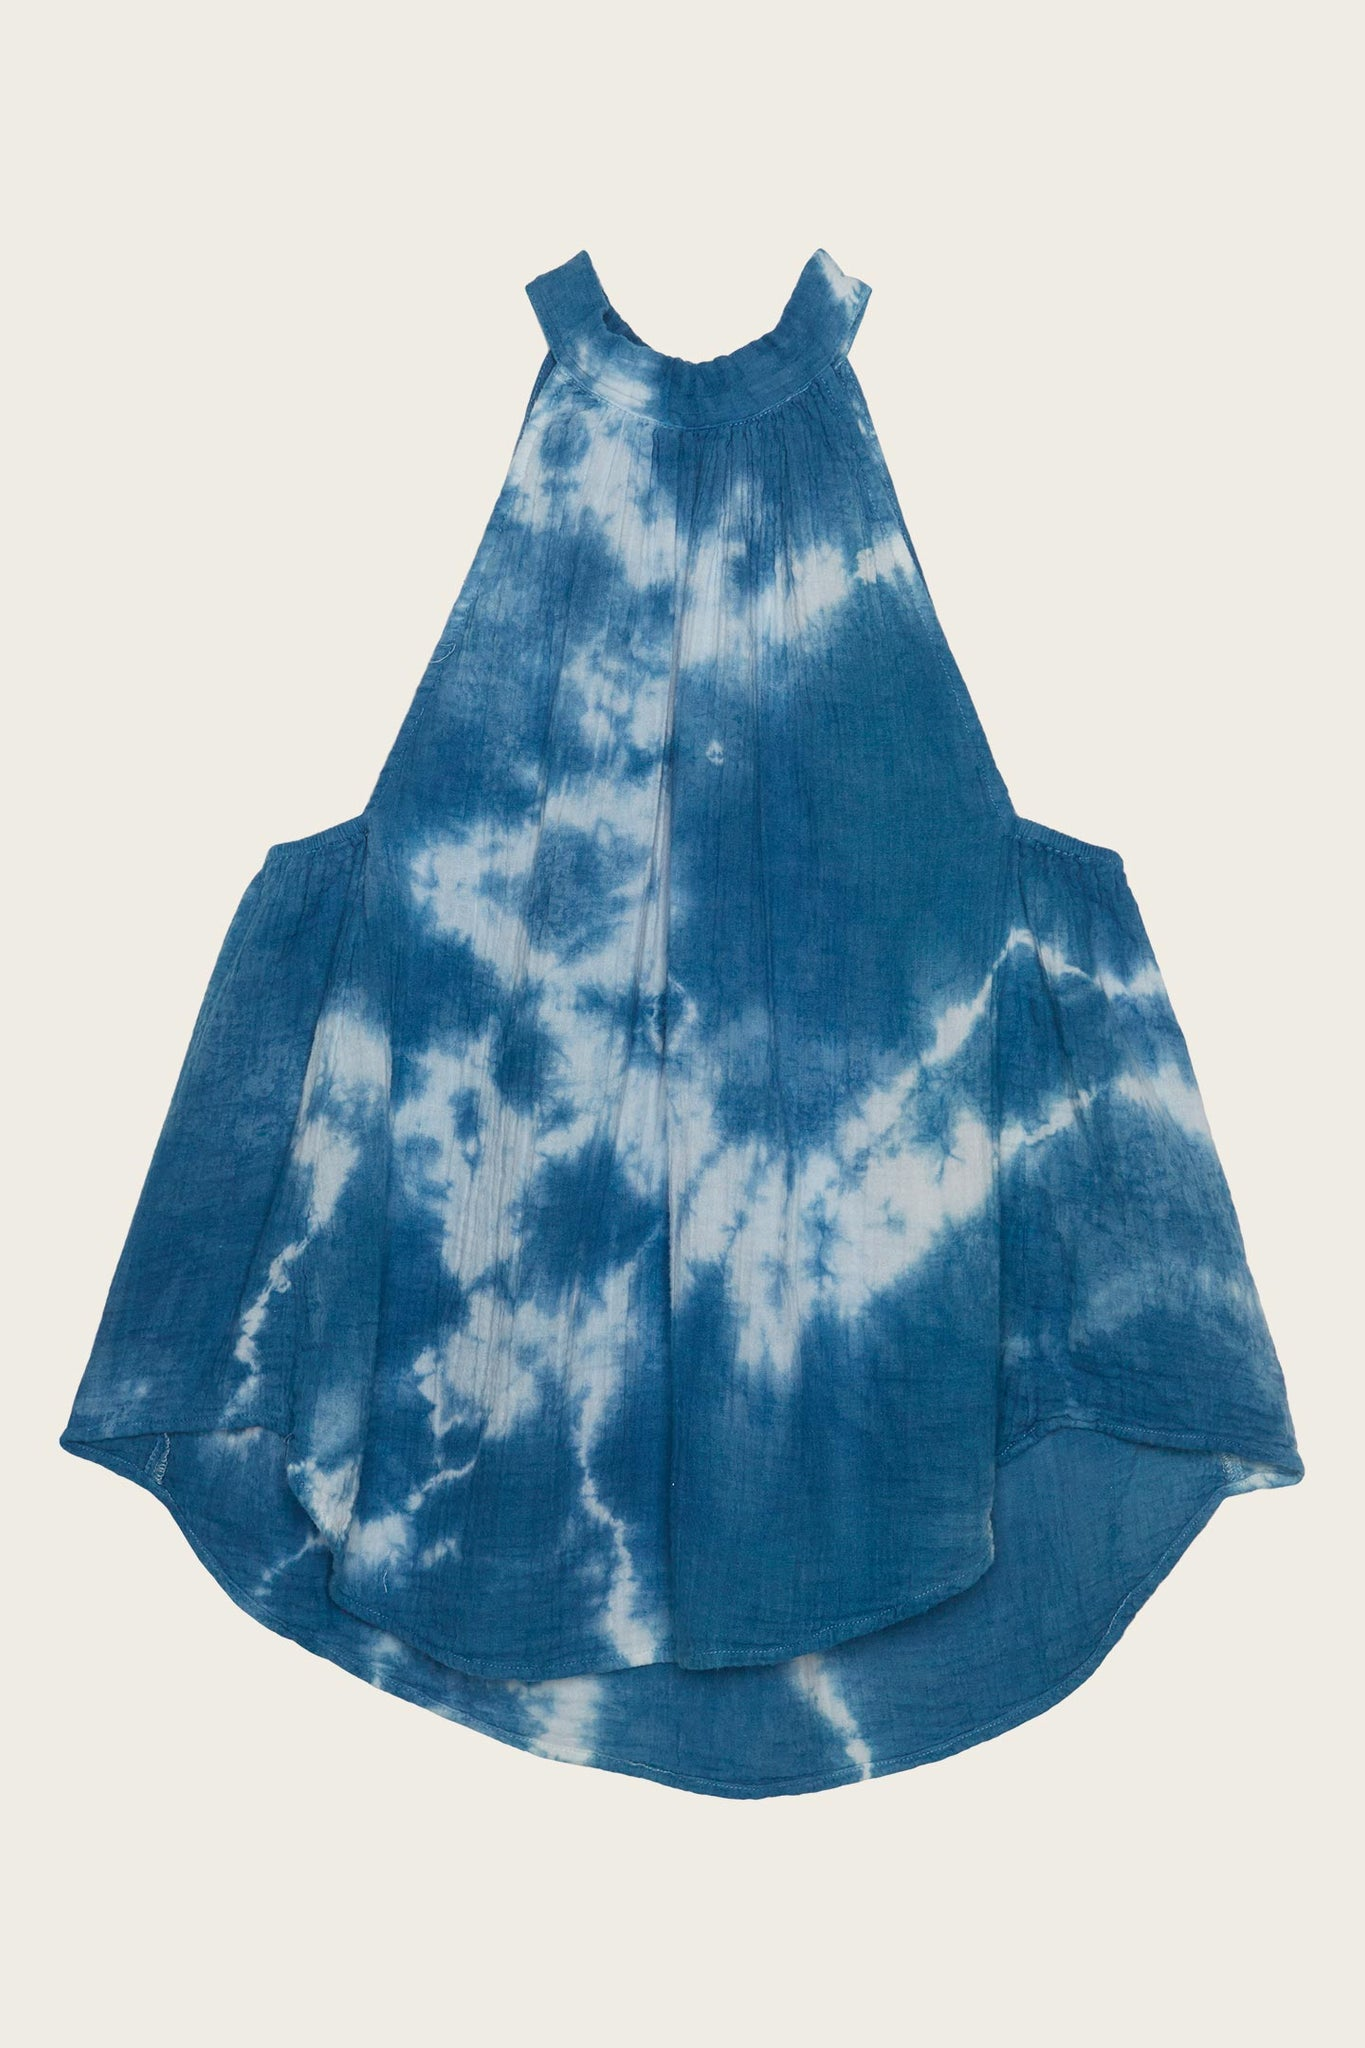 Poet Tie Dye Top | O'Neill Clothing USA